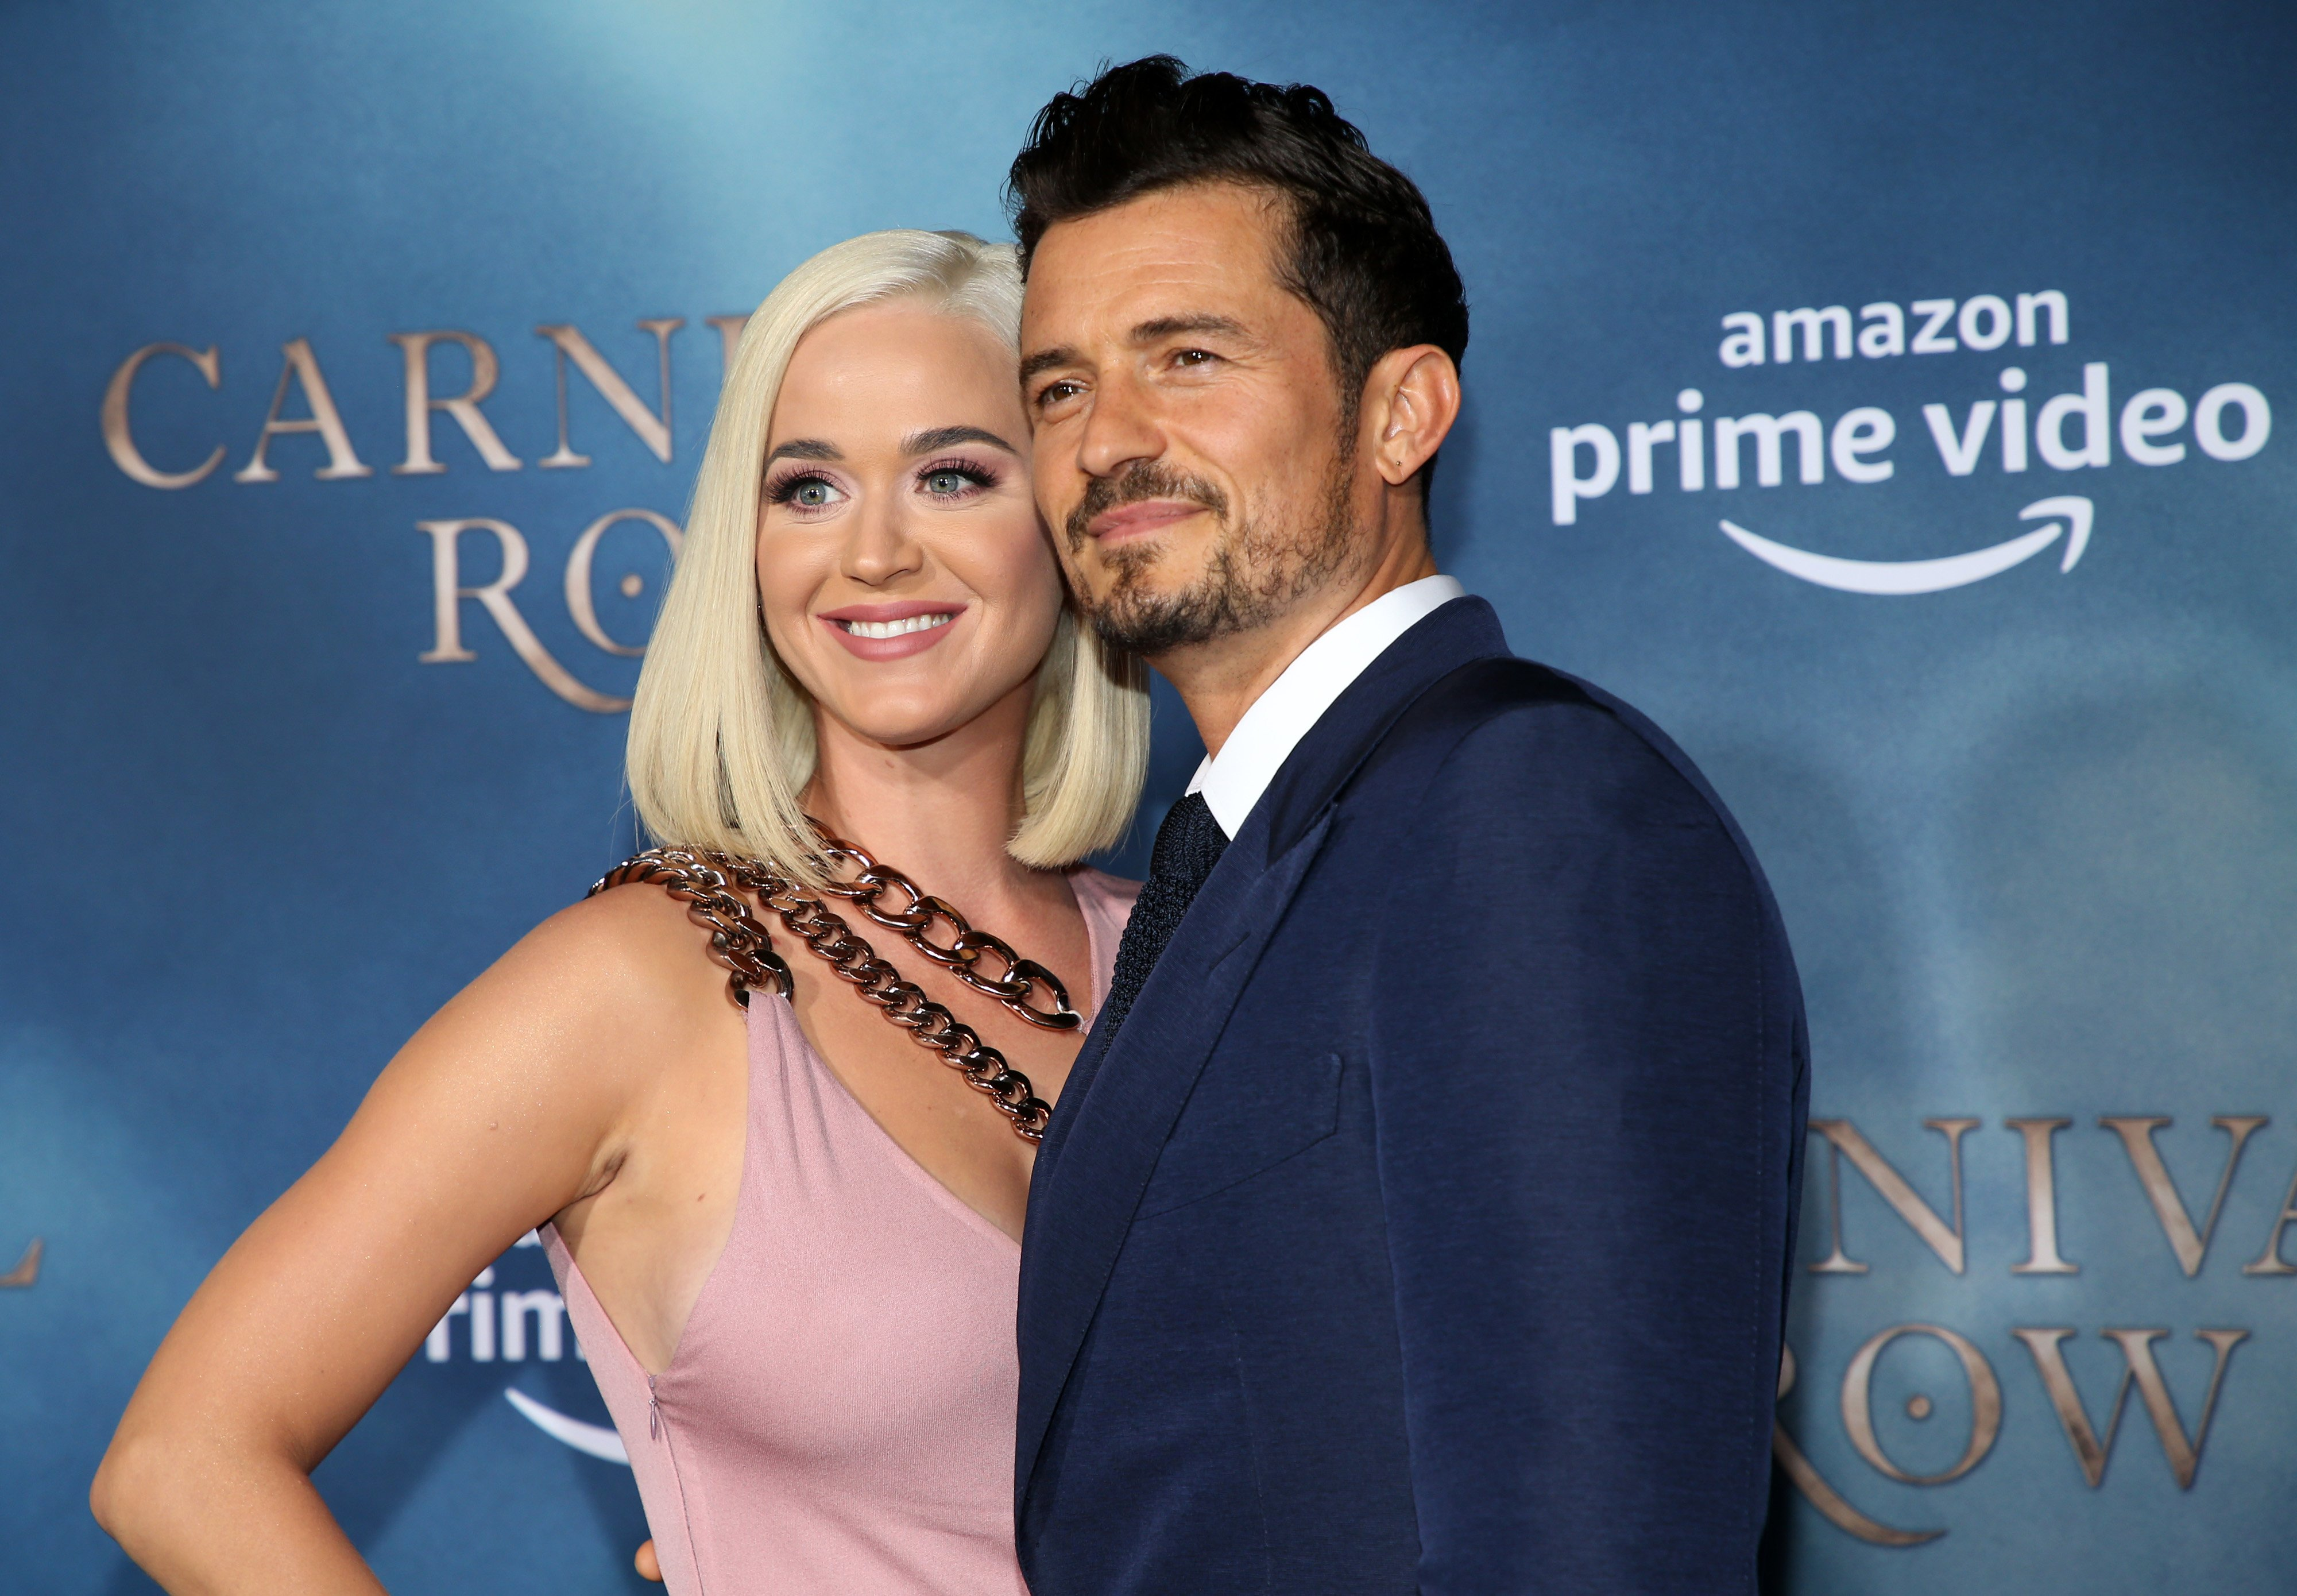 """Katy Perry and Orlando Bloom pictured at the LA premiere of Amazon's """"Carnival Row,"""" 2019, Hollywood, California. 